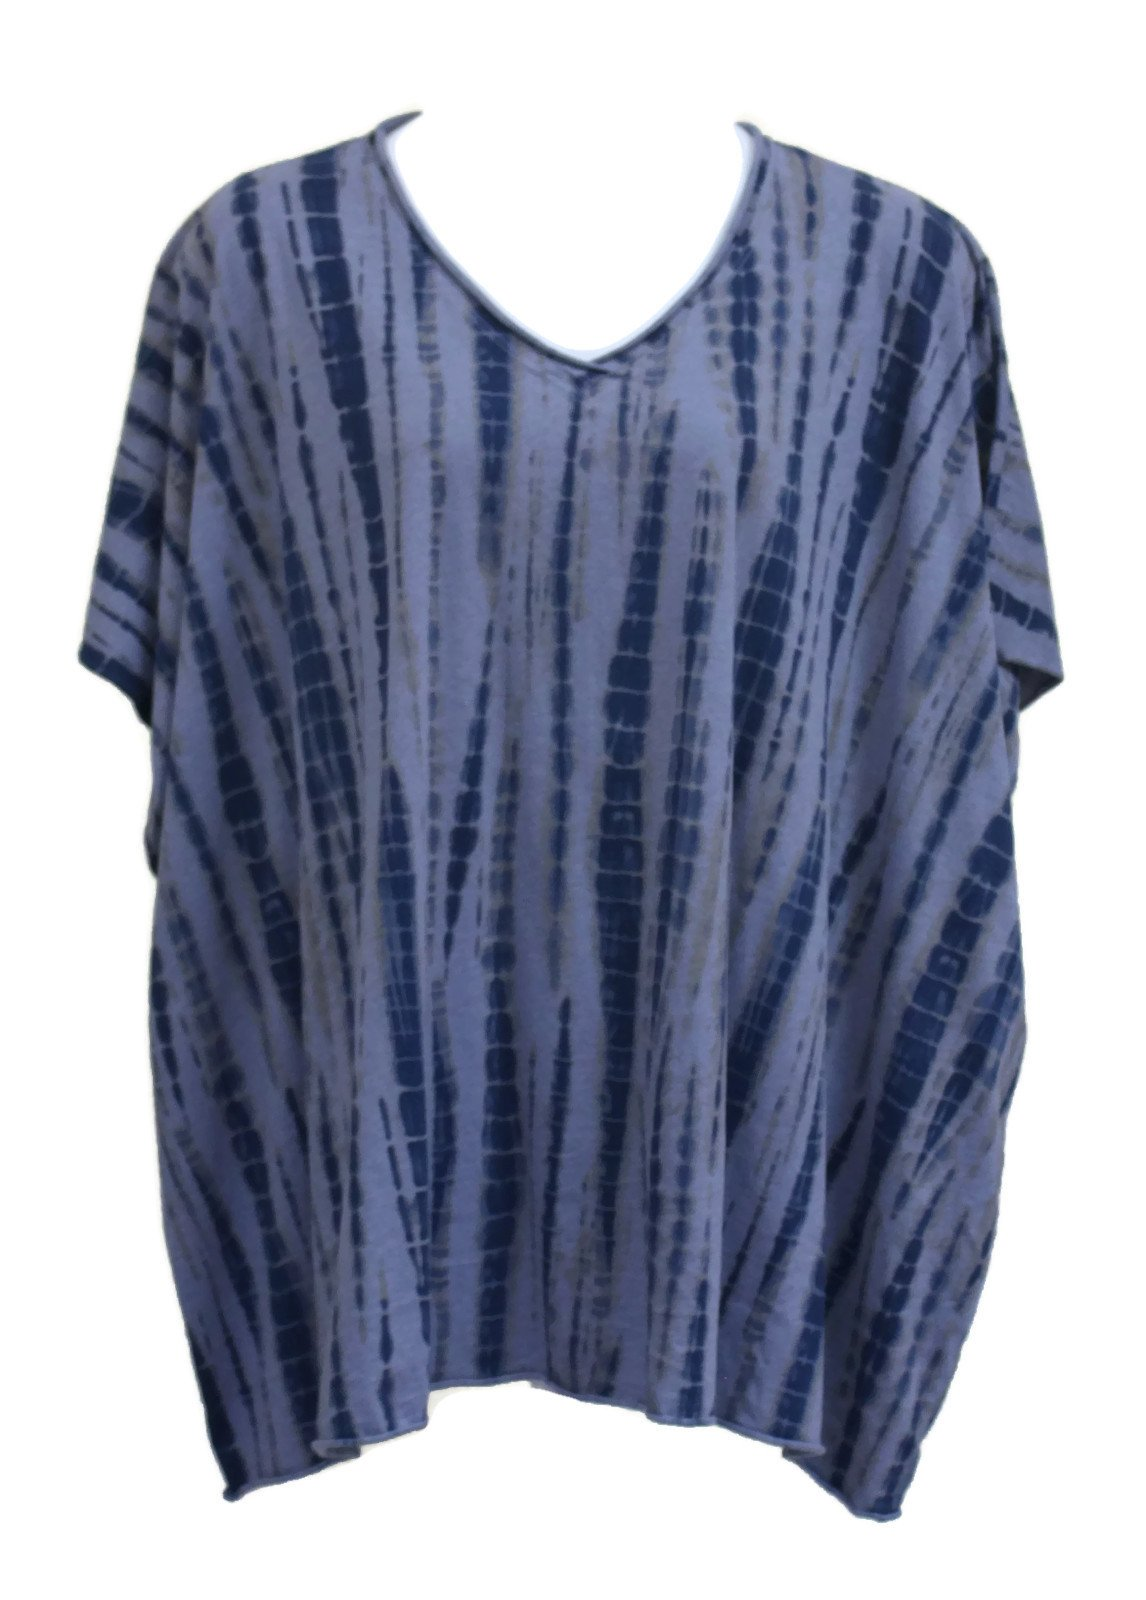 Prairie Cotton Women's Belize Elbow V Tunic Tee OSFM (One Size Fits Most, Slate)